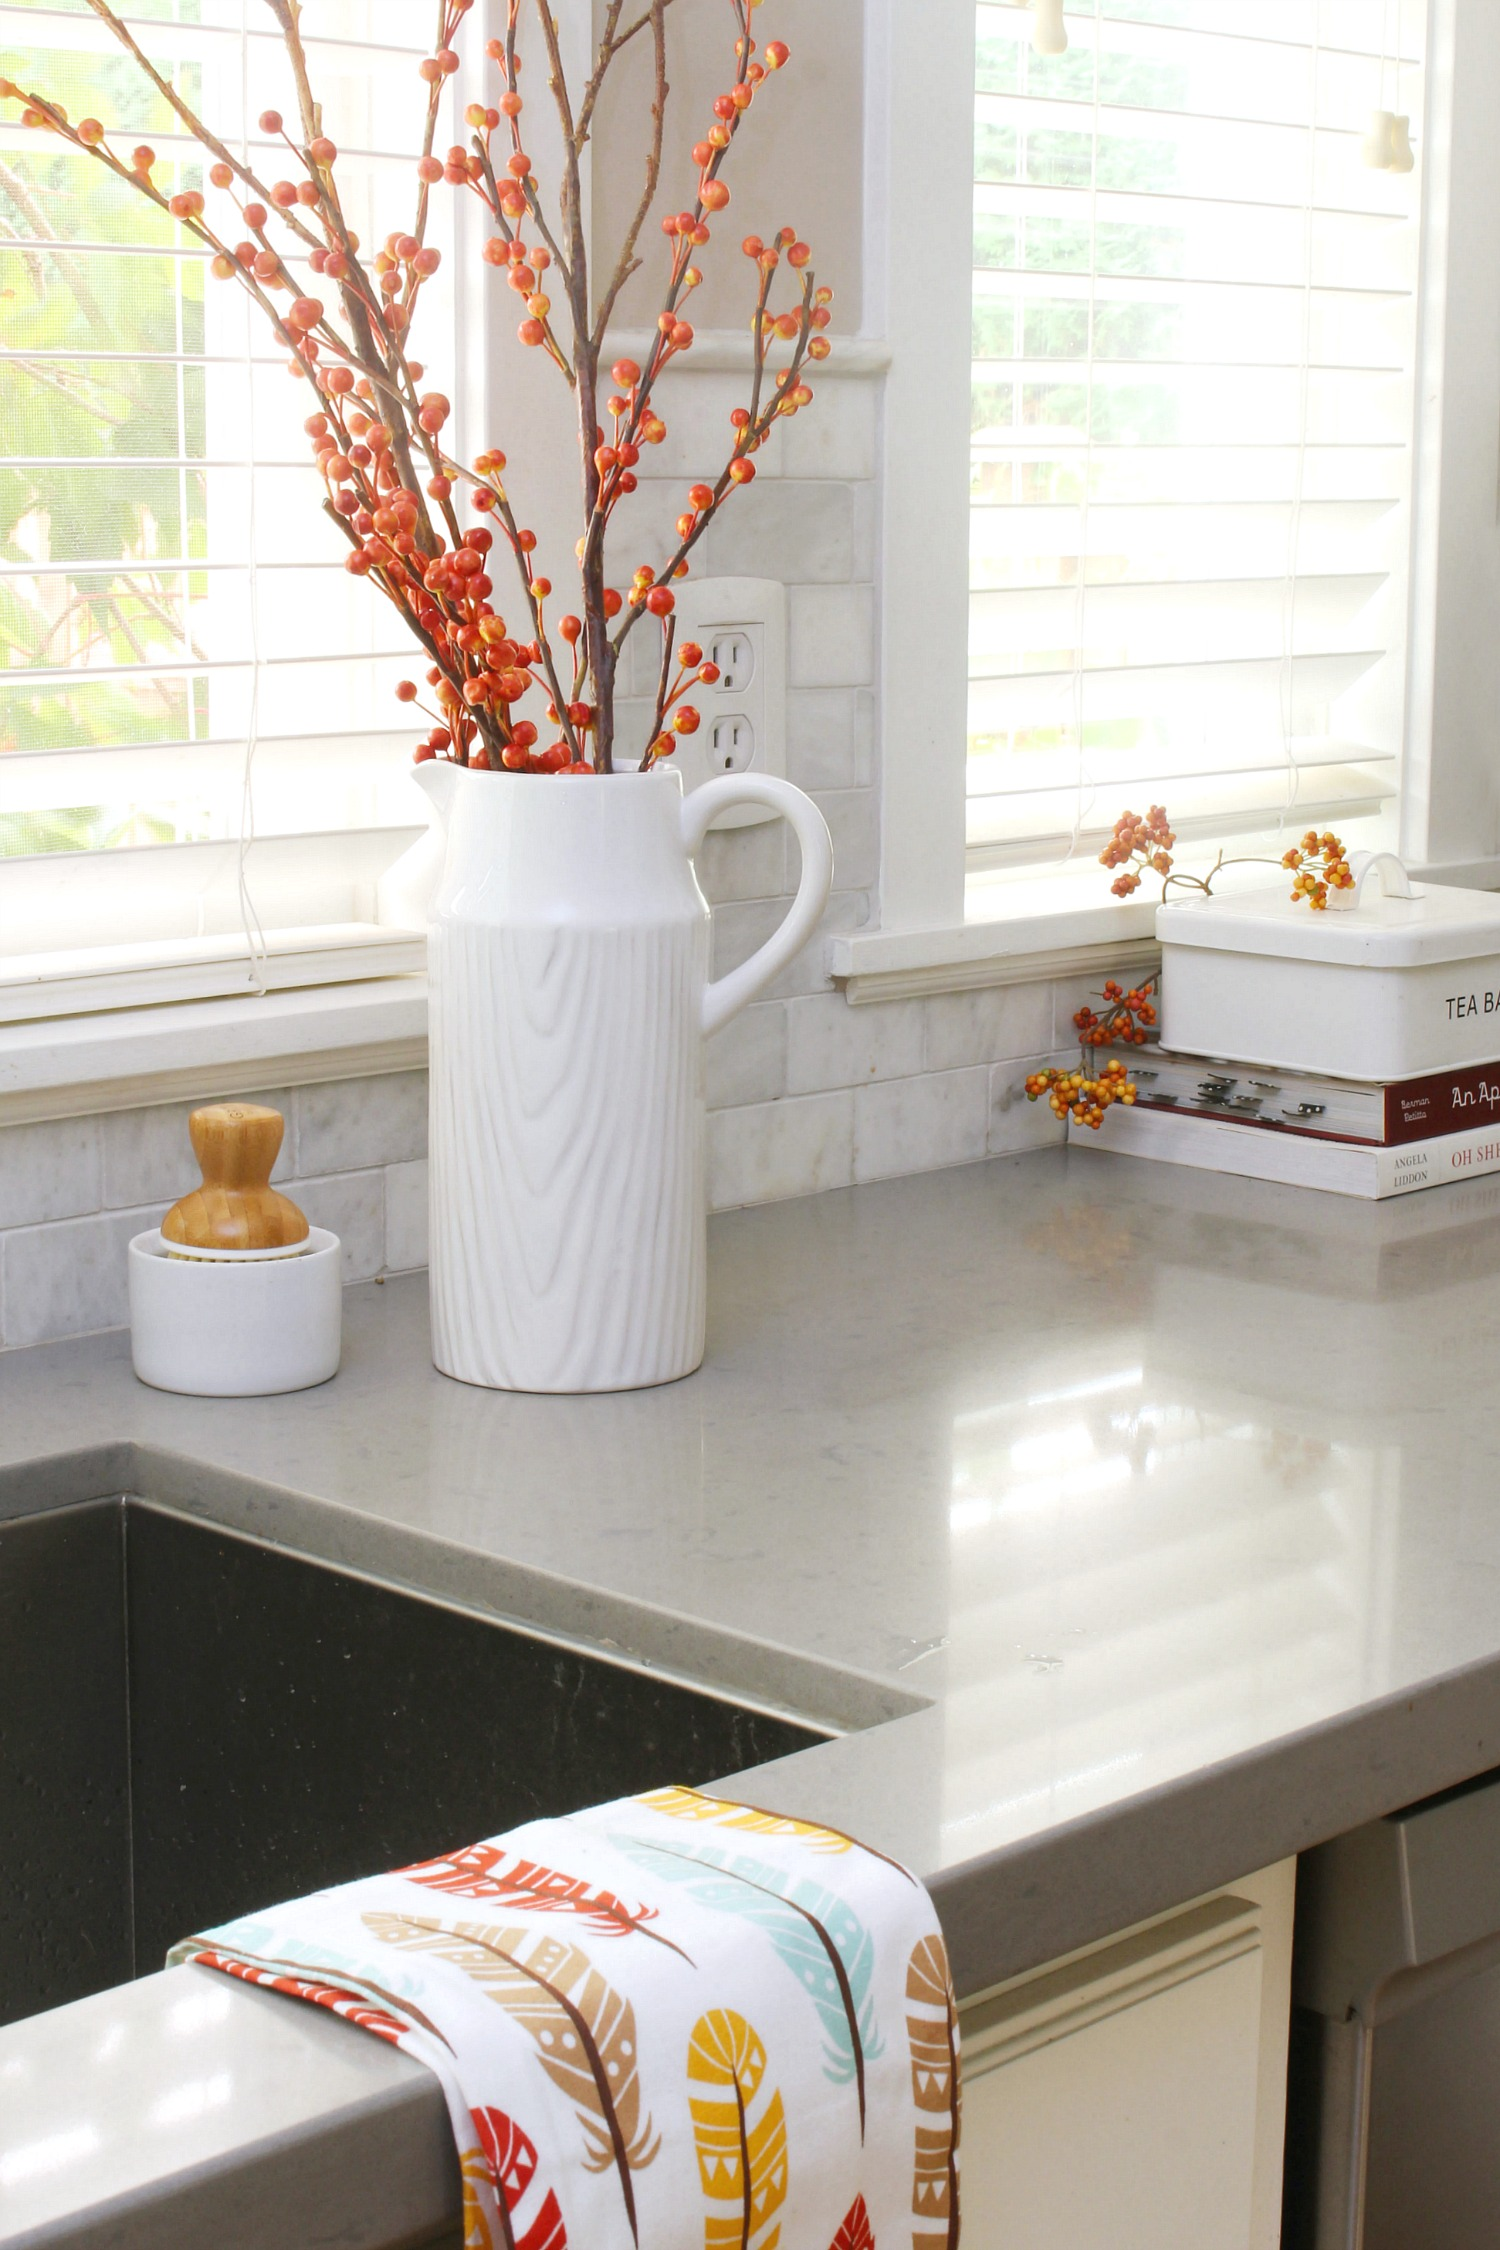 Decorating easy fall kitchen decorating ideas - clean and scentsible